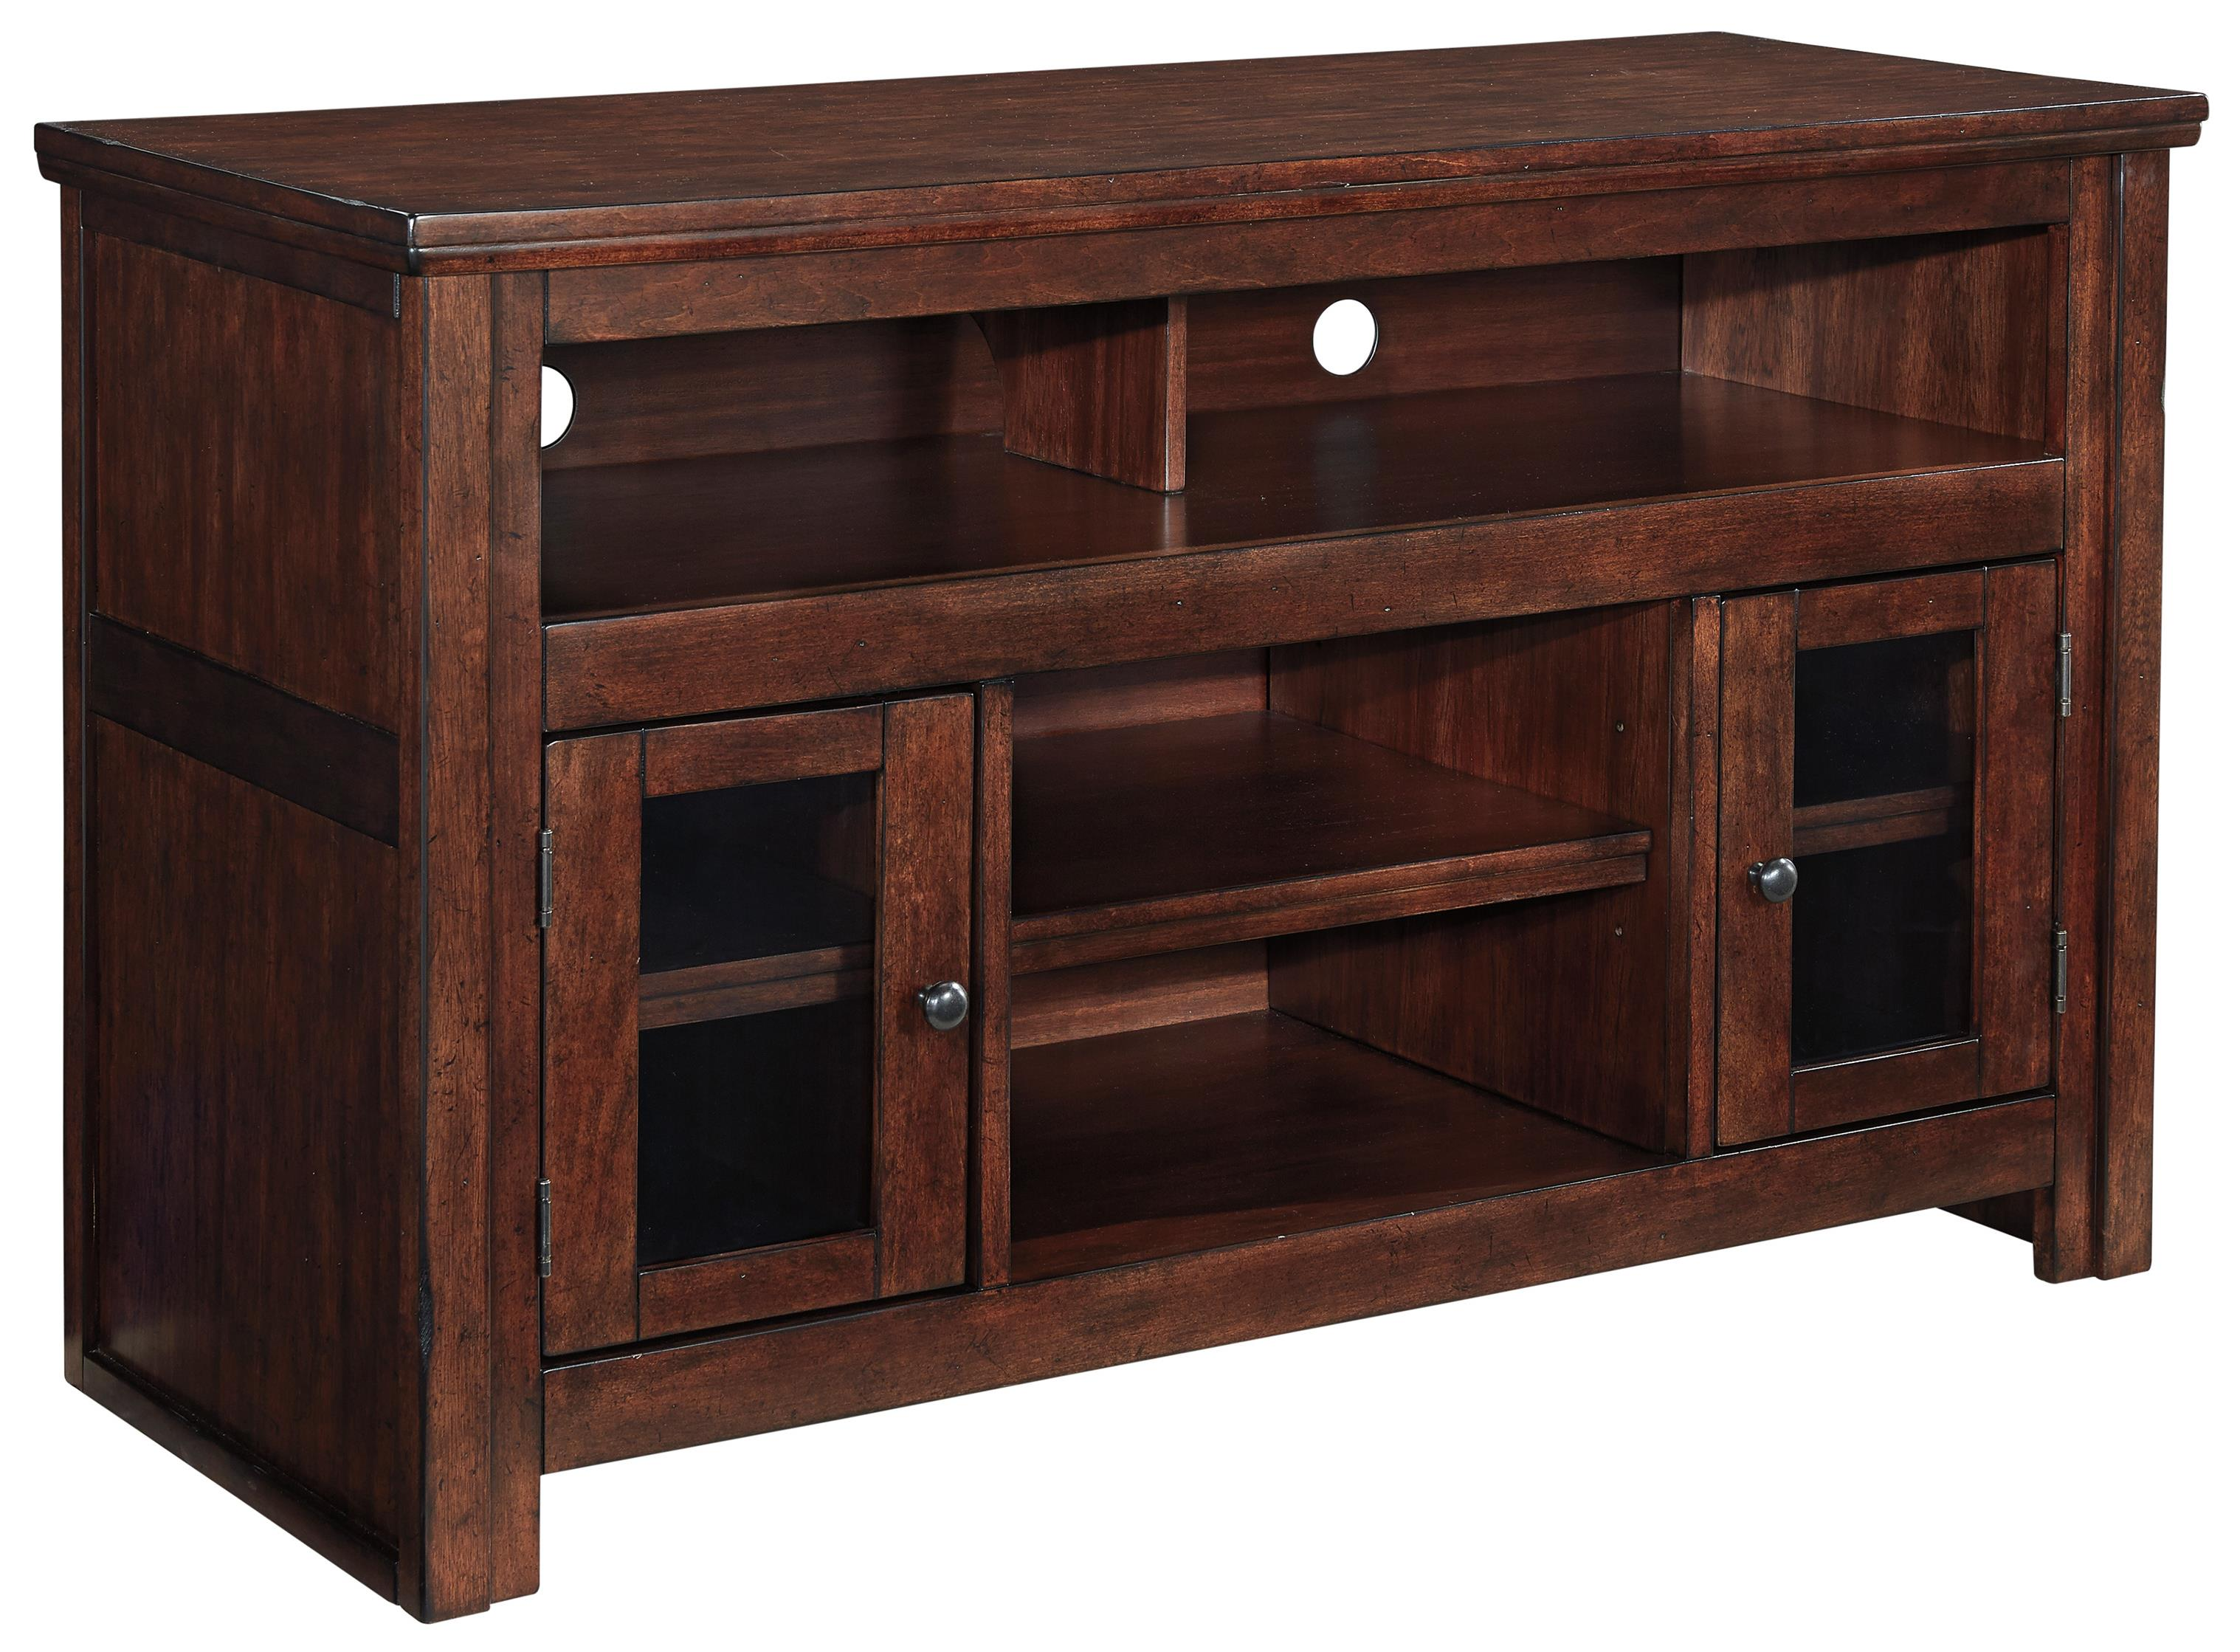 Harpan Medium TV Stand by Signature Design by Ashley at Suburban Furniture